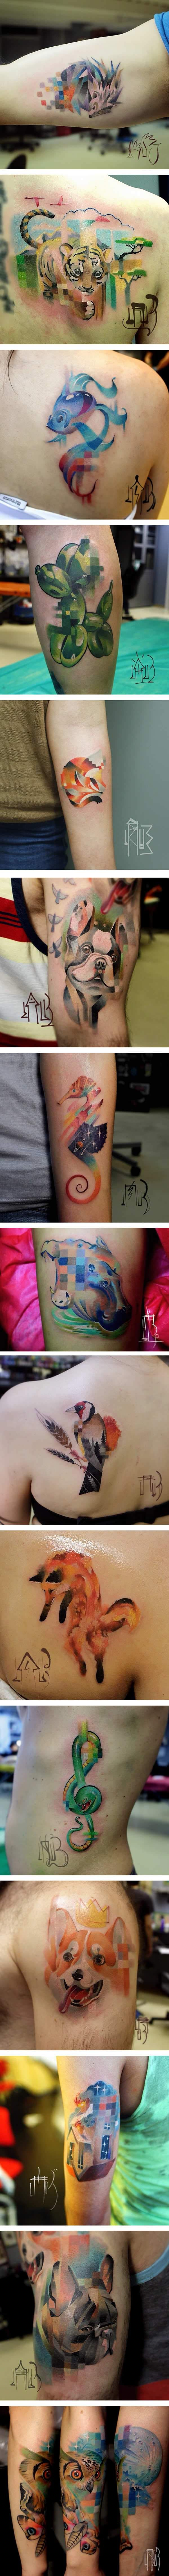 Awesome Animal Tattoos With Digital Pixel Glitches (By Lesha Lauz)